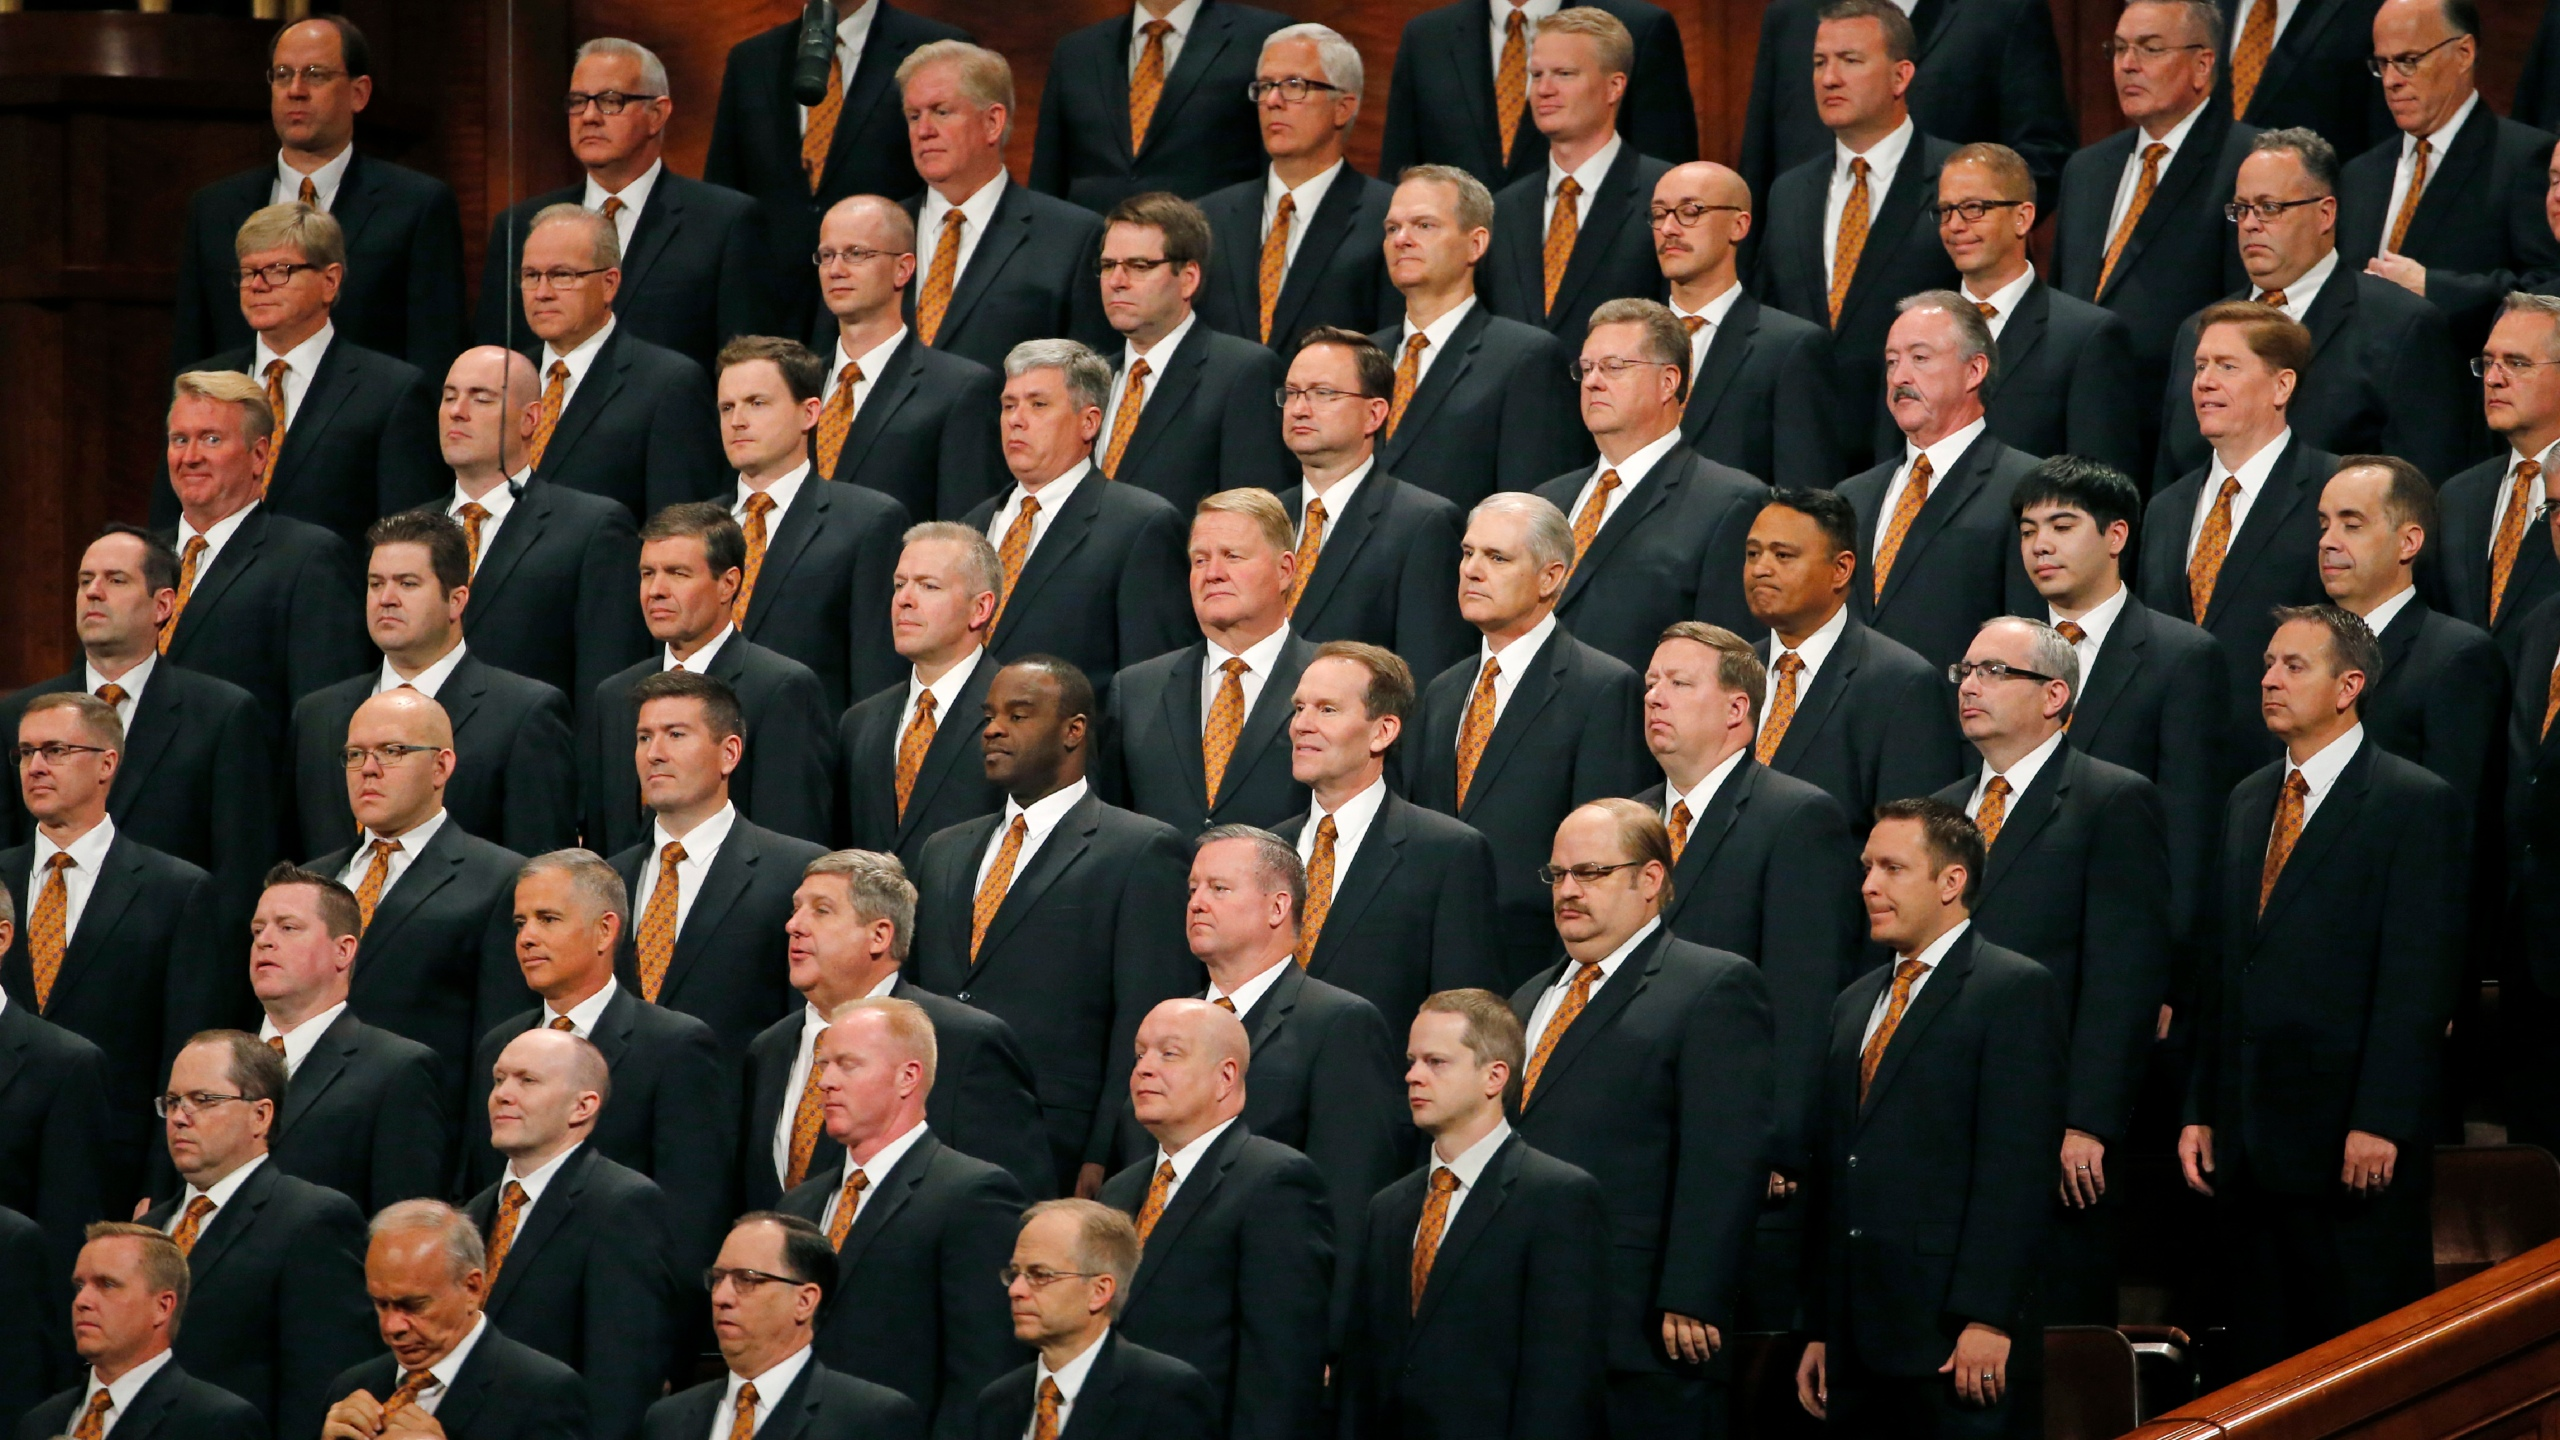 Chicago Christmas Concert 2020 Mormon choir Christmas concert cancelled due to pandemic | WGN